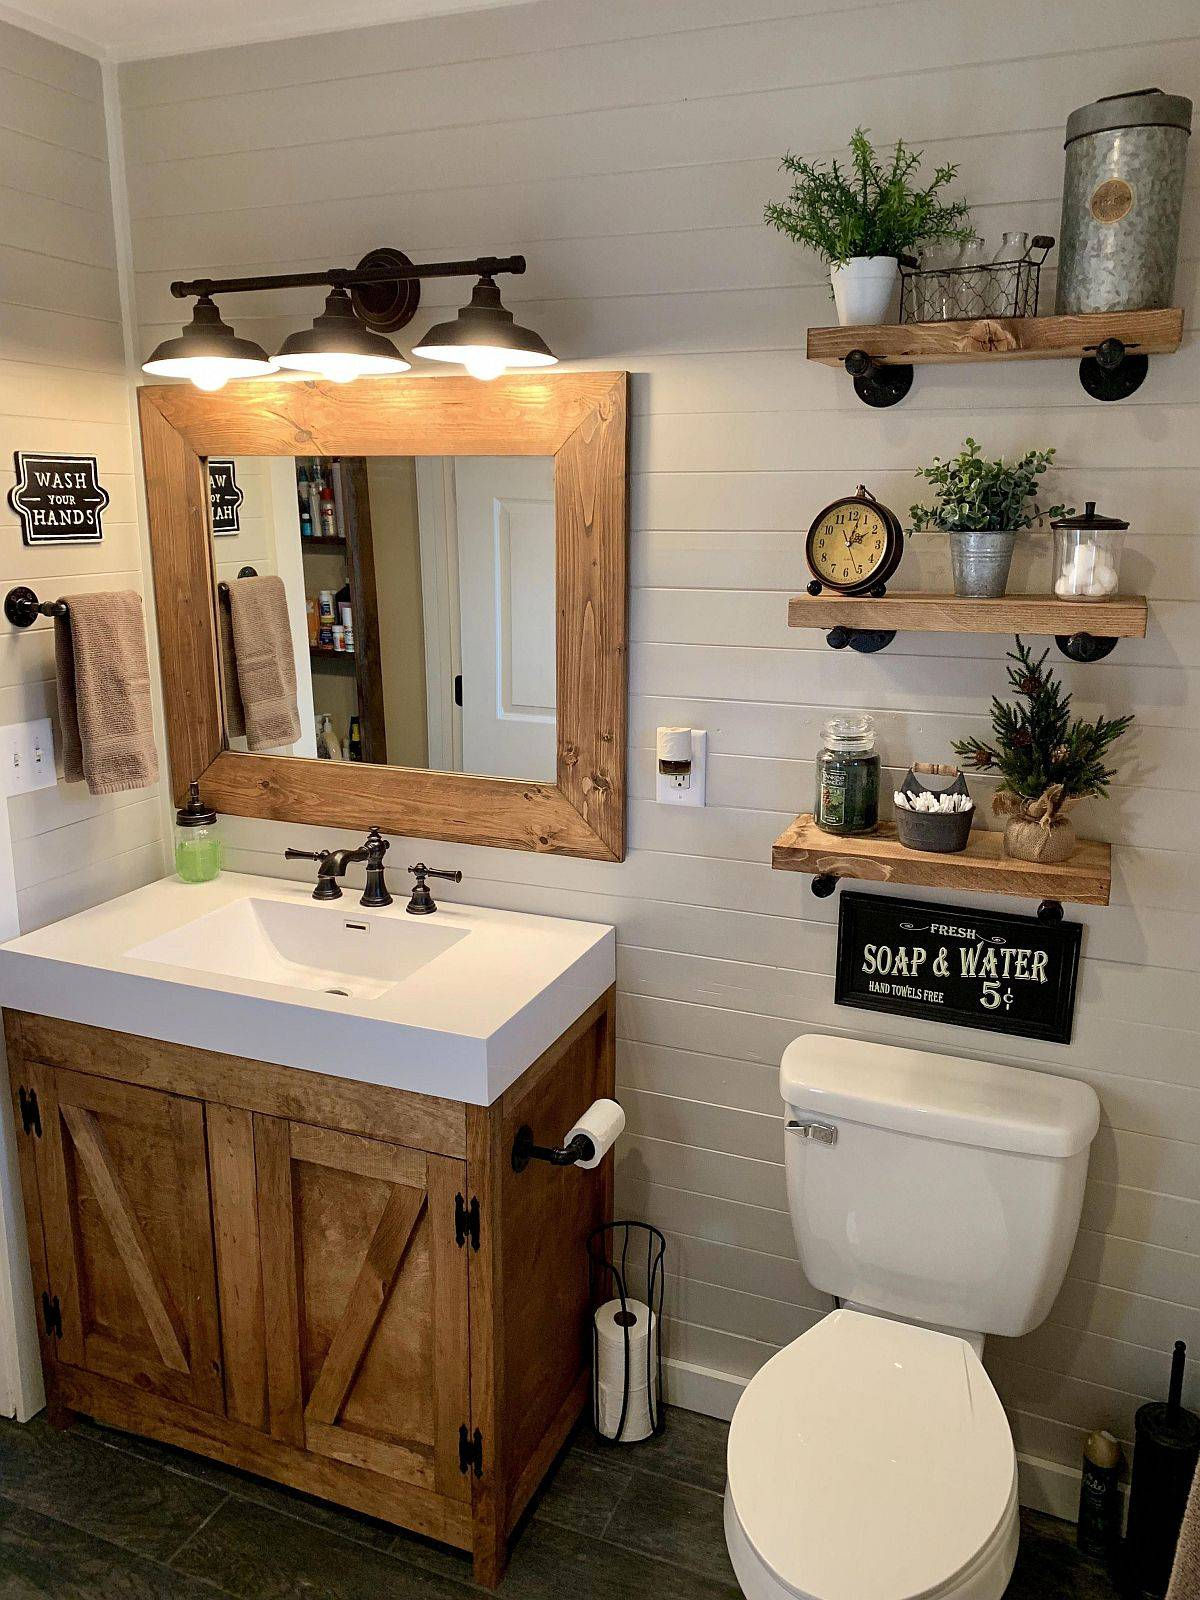 Tiny-white-and-wood-bathroom-in-farmhouse-style-46759